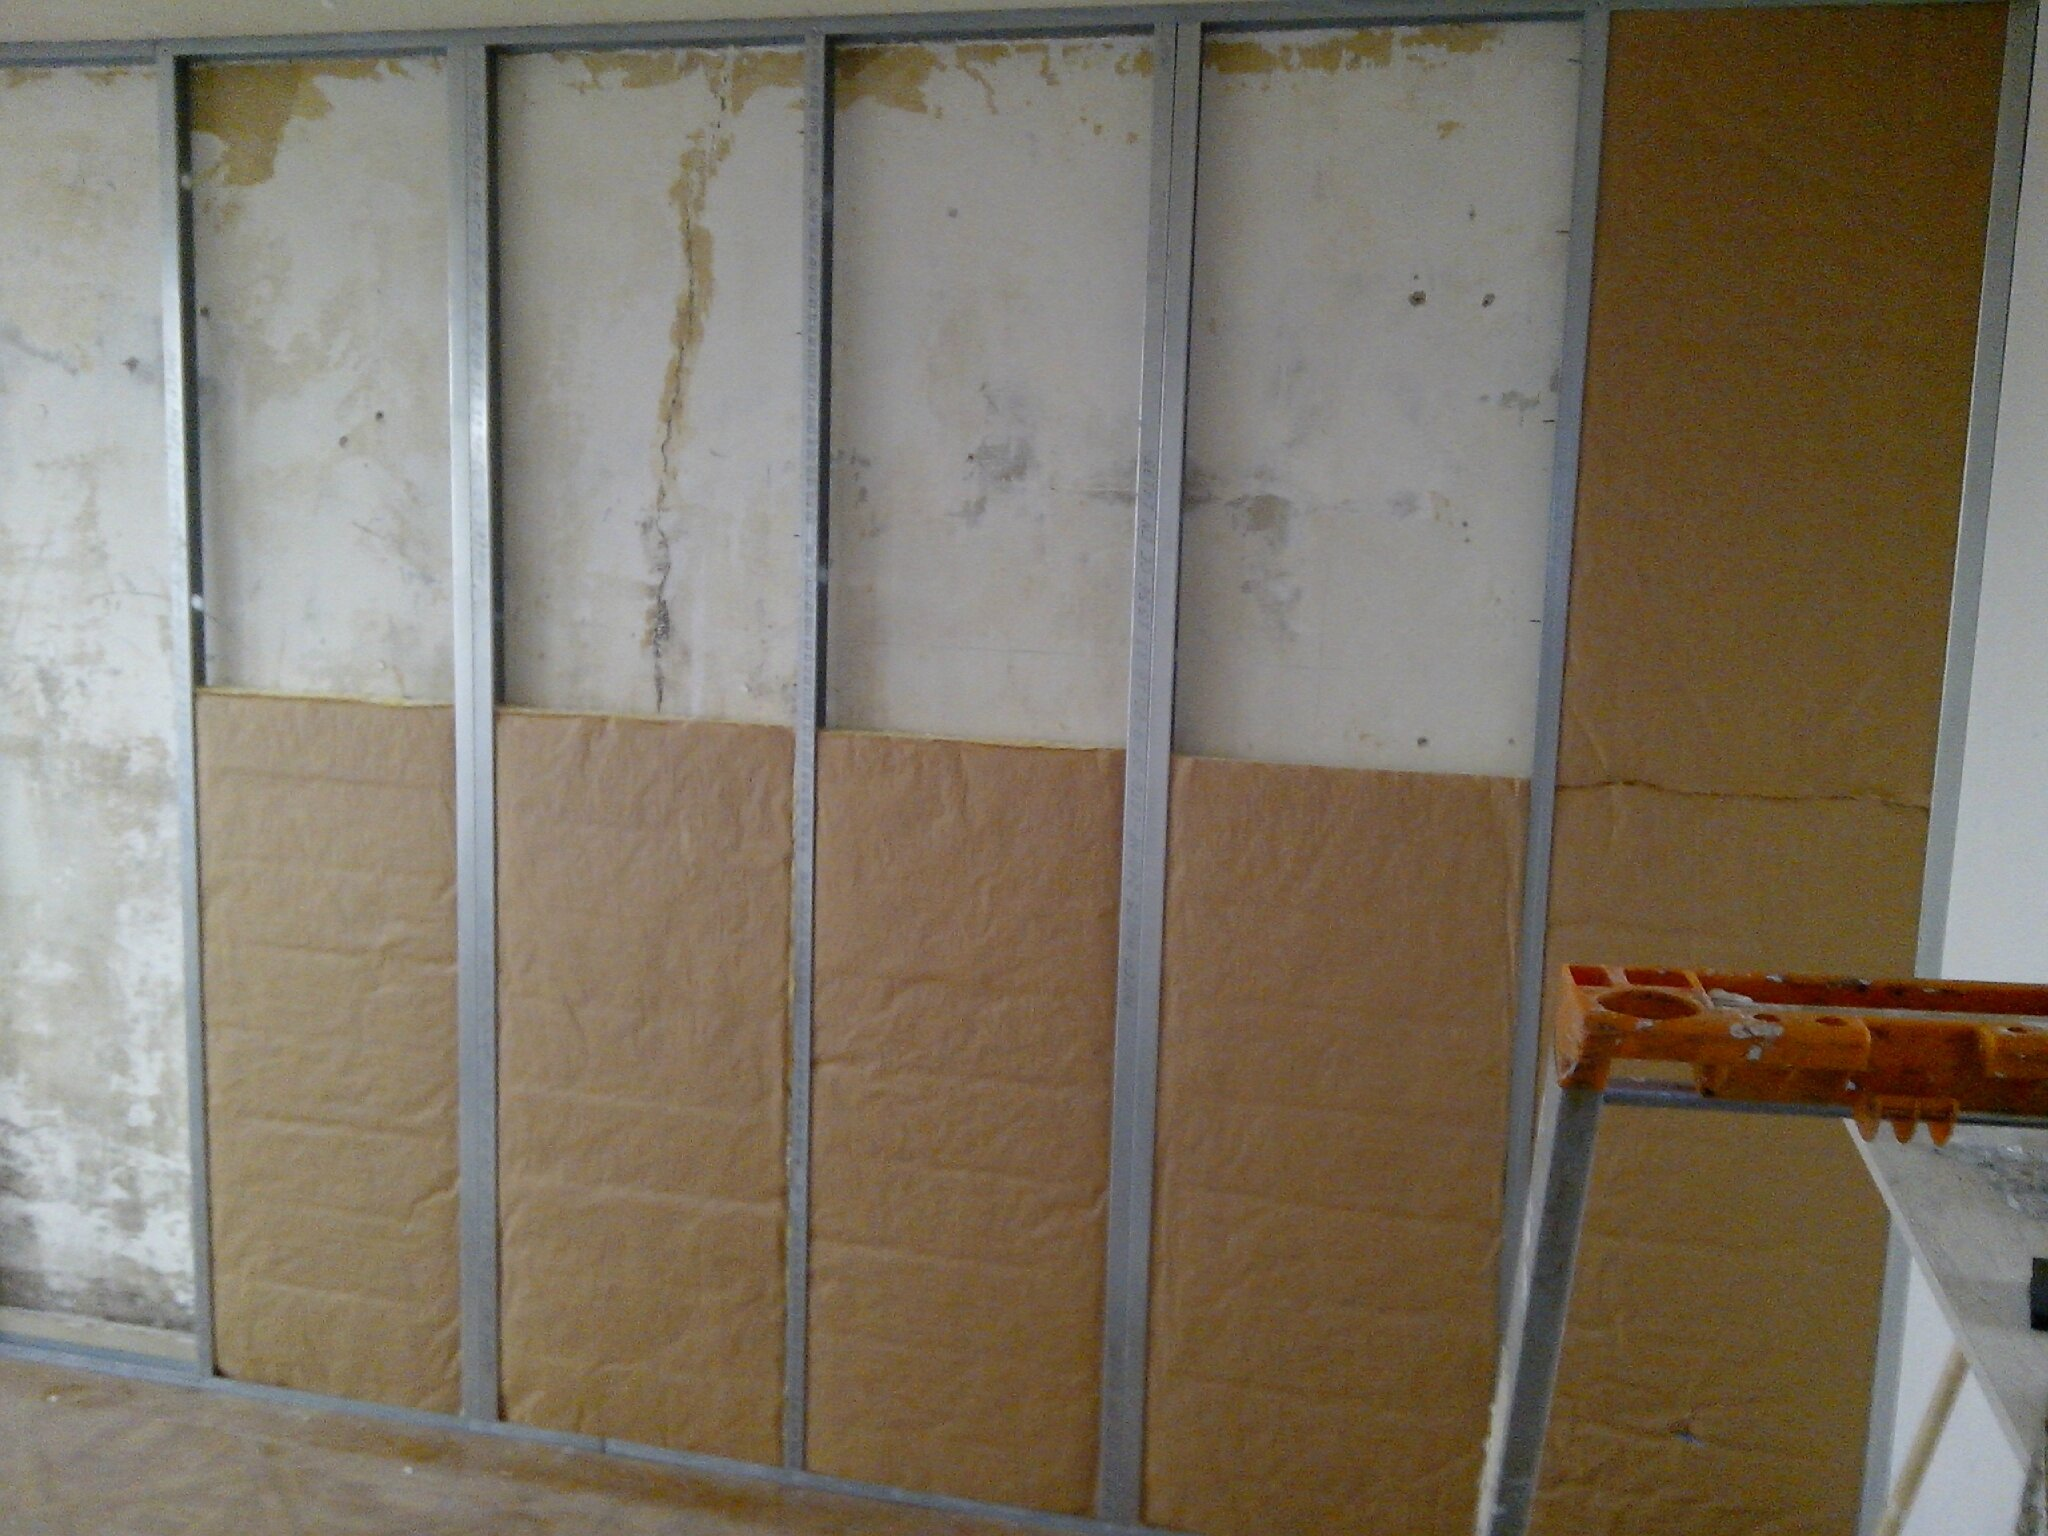 Isolation murs interieurs en renovation comment r nover for Isolation mur interieur renovation